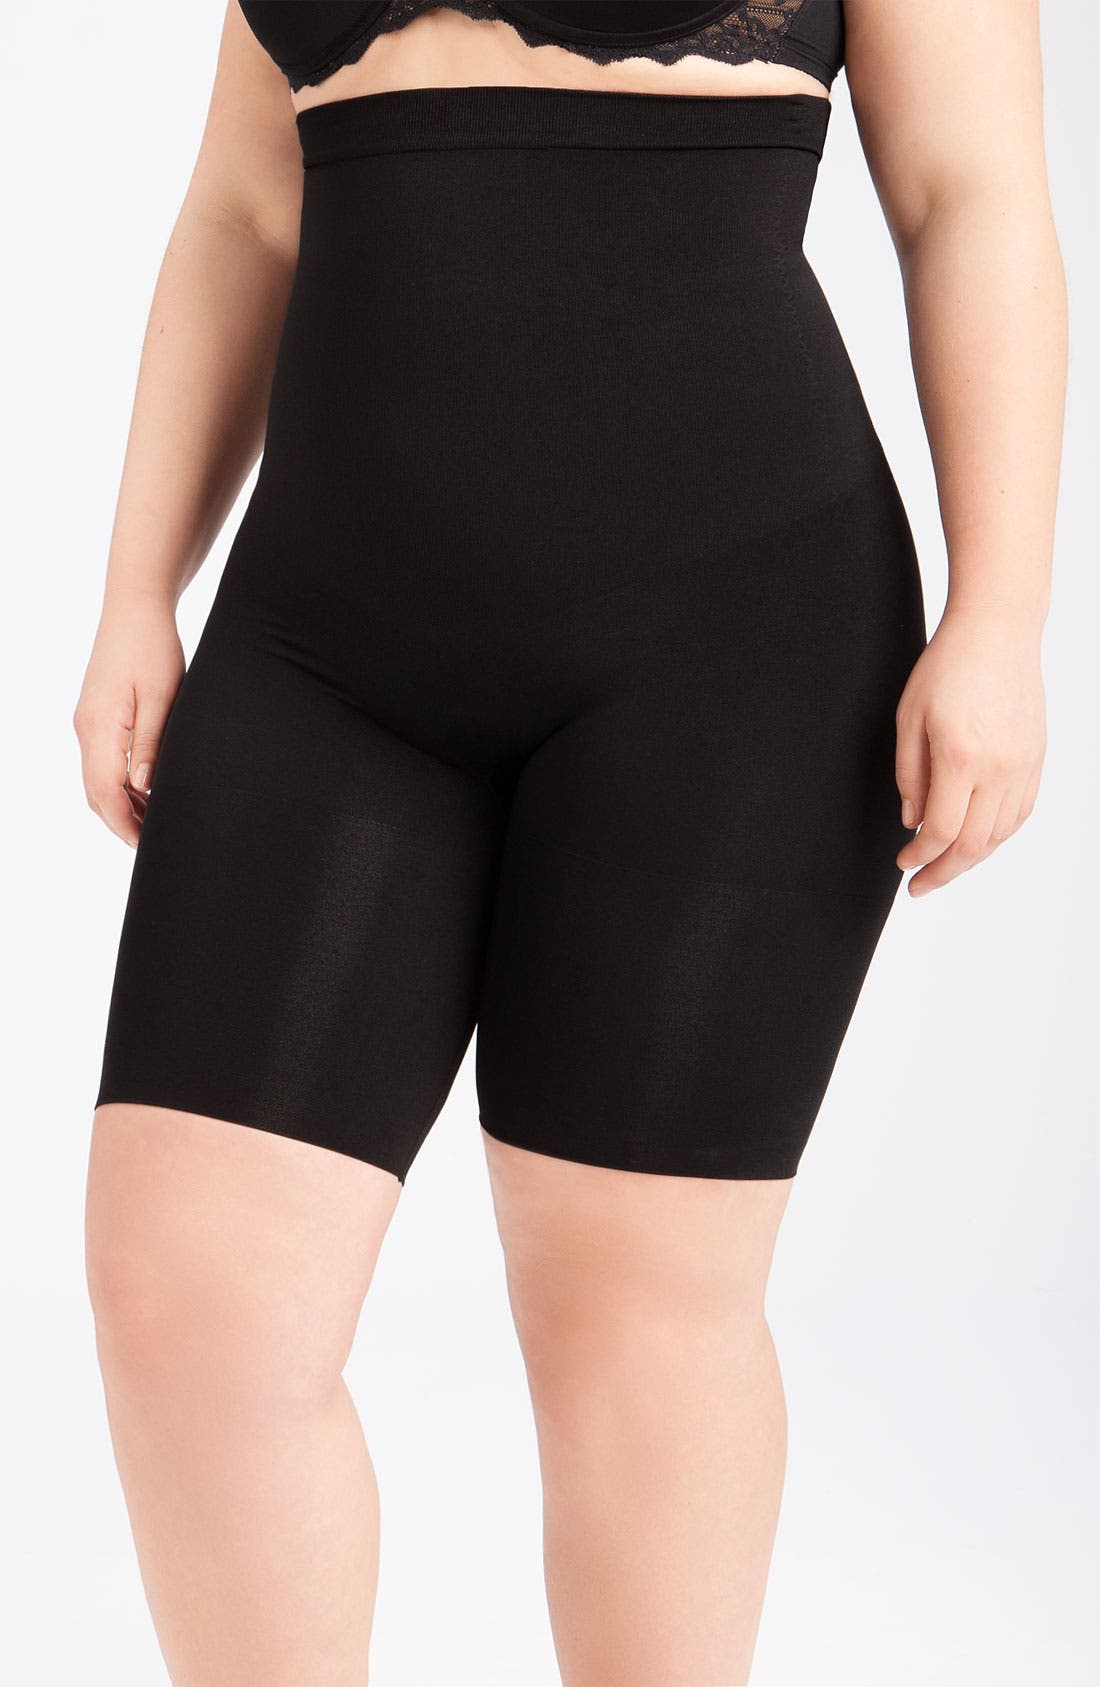 Alternate Image 1 Selected - SPANX® 'Slim Cognito' Mid Thigh Bodysuit Shaper (Plus Size)